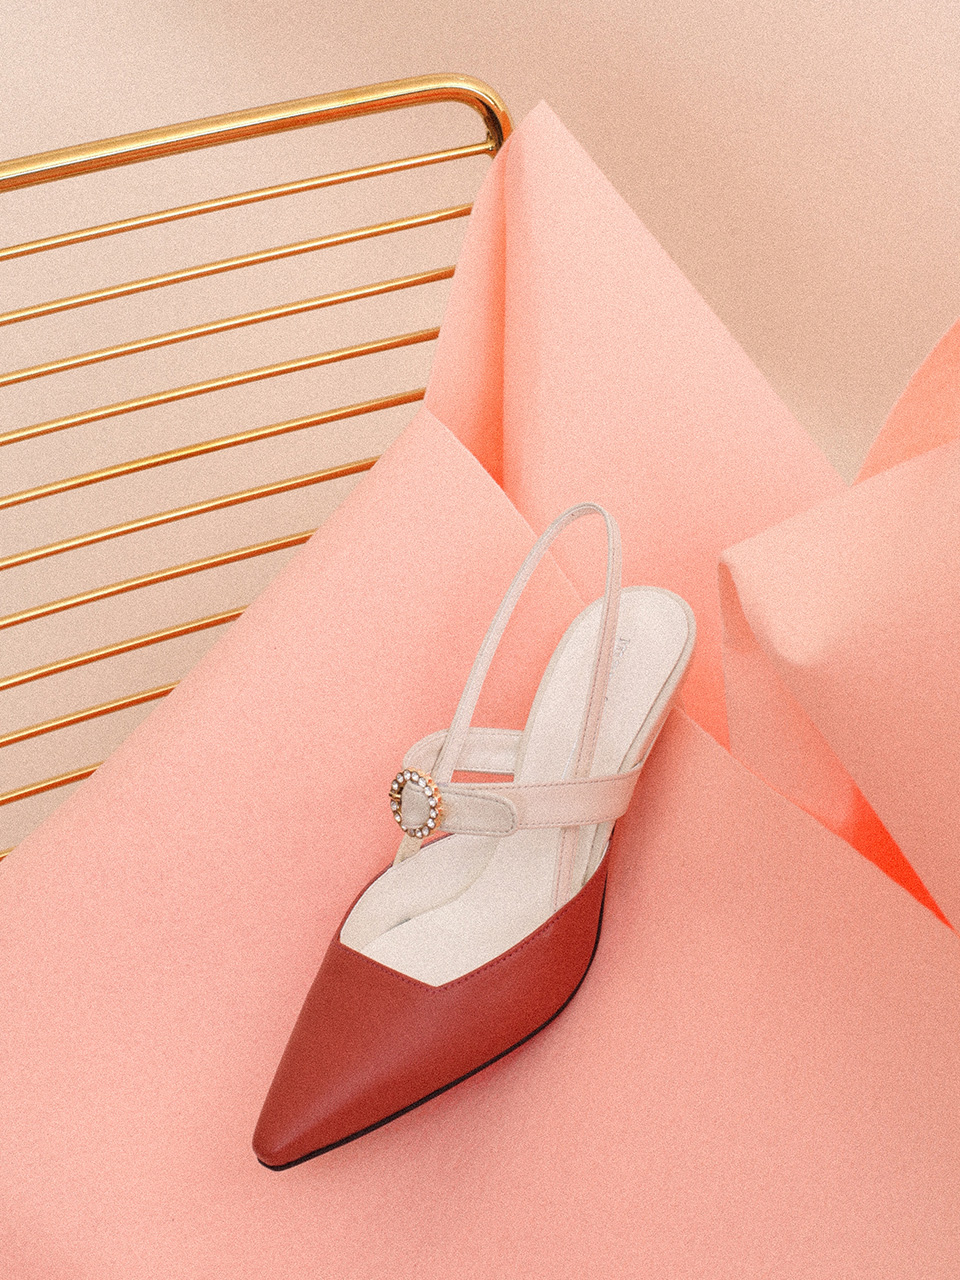 Mrc033 Blooming Slingback (Rose Cream)